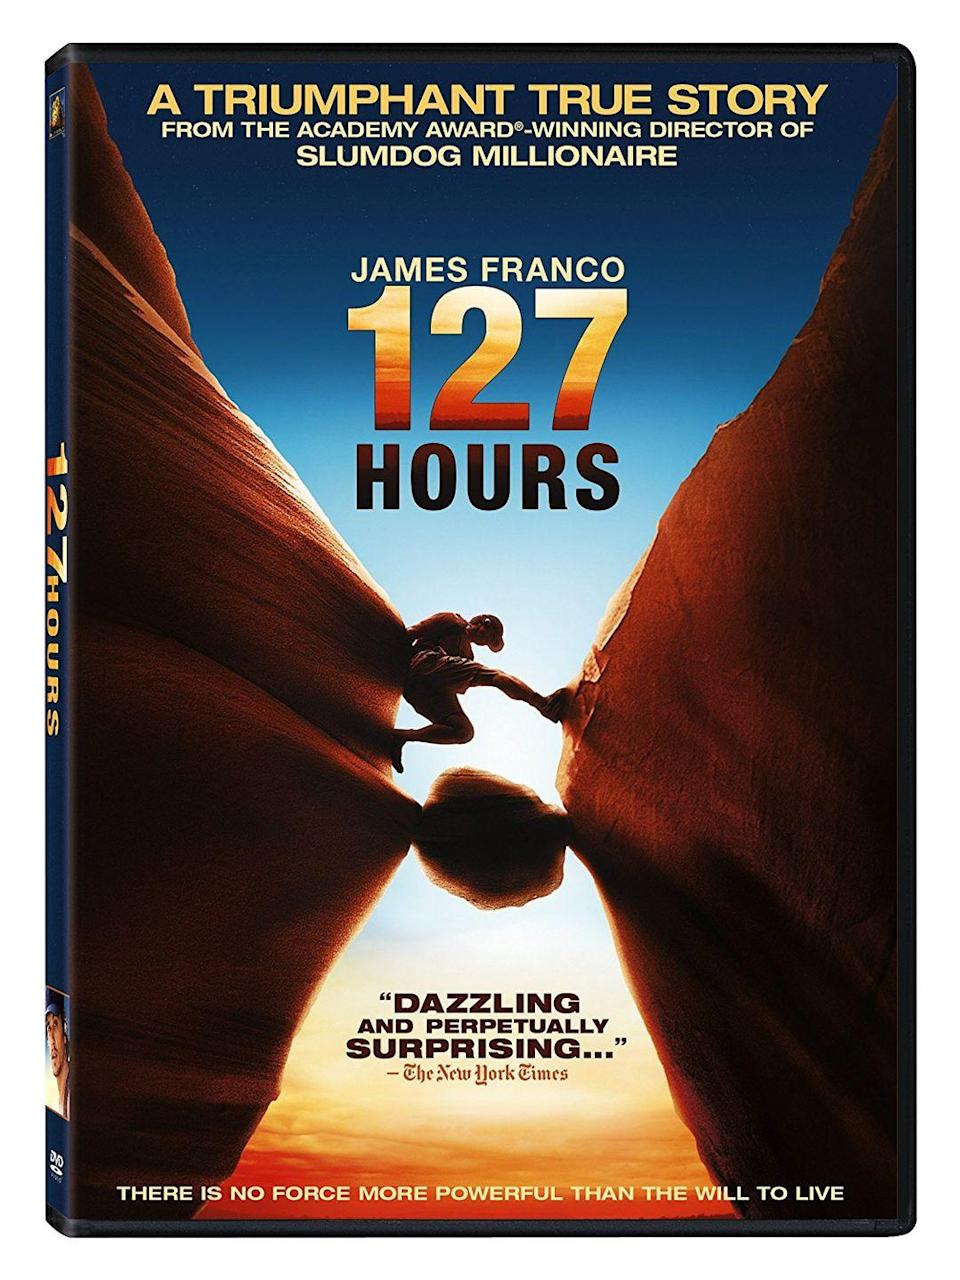 """<p><a class=""""link rapid-noclick-resp"""" href=""""https://www.amazon.com/127-Hours-James-Franco/dp/B004Q3SGNK/ref=sr_1_1?dchild=1&keywords=127+hours&qid=1614190338&sr=8-1&tag=syn-yahoo-20&ascsubtag=%5Bartid%7C10067.g.15907978%5Bsrc%7Cyahoo-us"""" rel=""""nofollow noopener"""" target=""""_blank"""" data-ylk=""""slk:Watch Now"""">Watch Now</a> </p><p>James Franco stars as hiker Aron Ralston in this heart-wrenching true story about an adventurer who finds himself trapped under a boulder for five days. Based on Ralston's memoir, the film chronicles his agonizing decision to amputate his own arm in order to survive.</p>"""